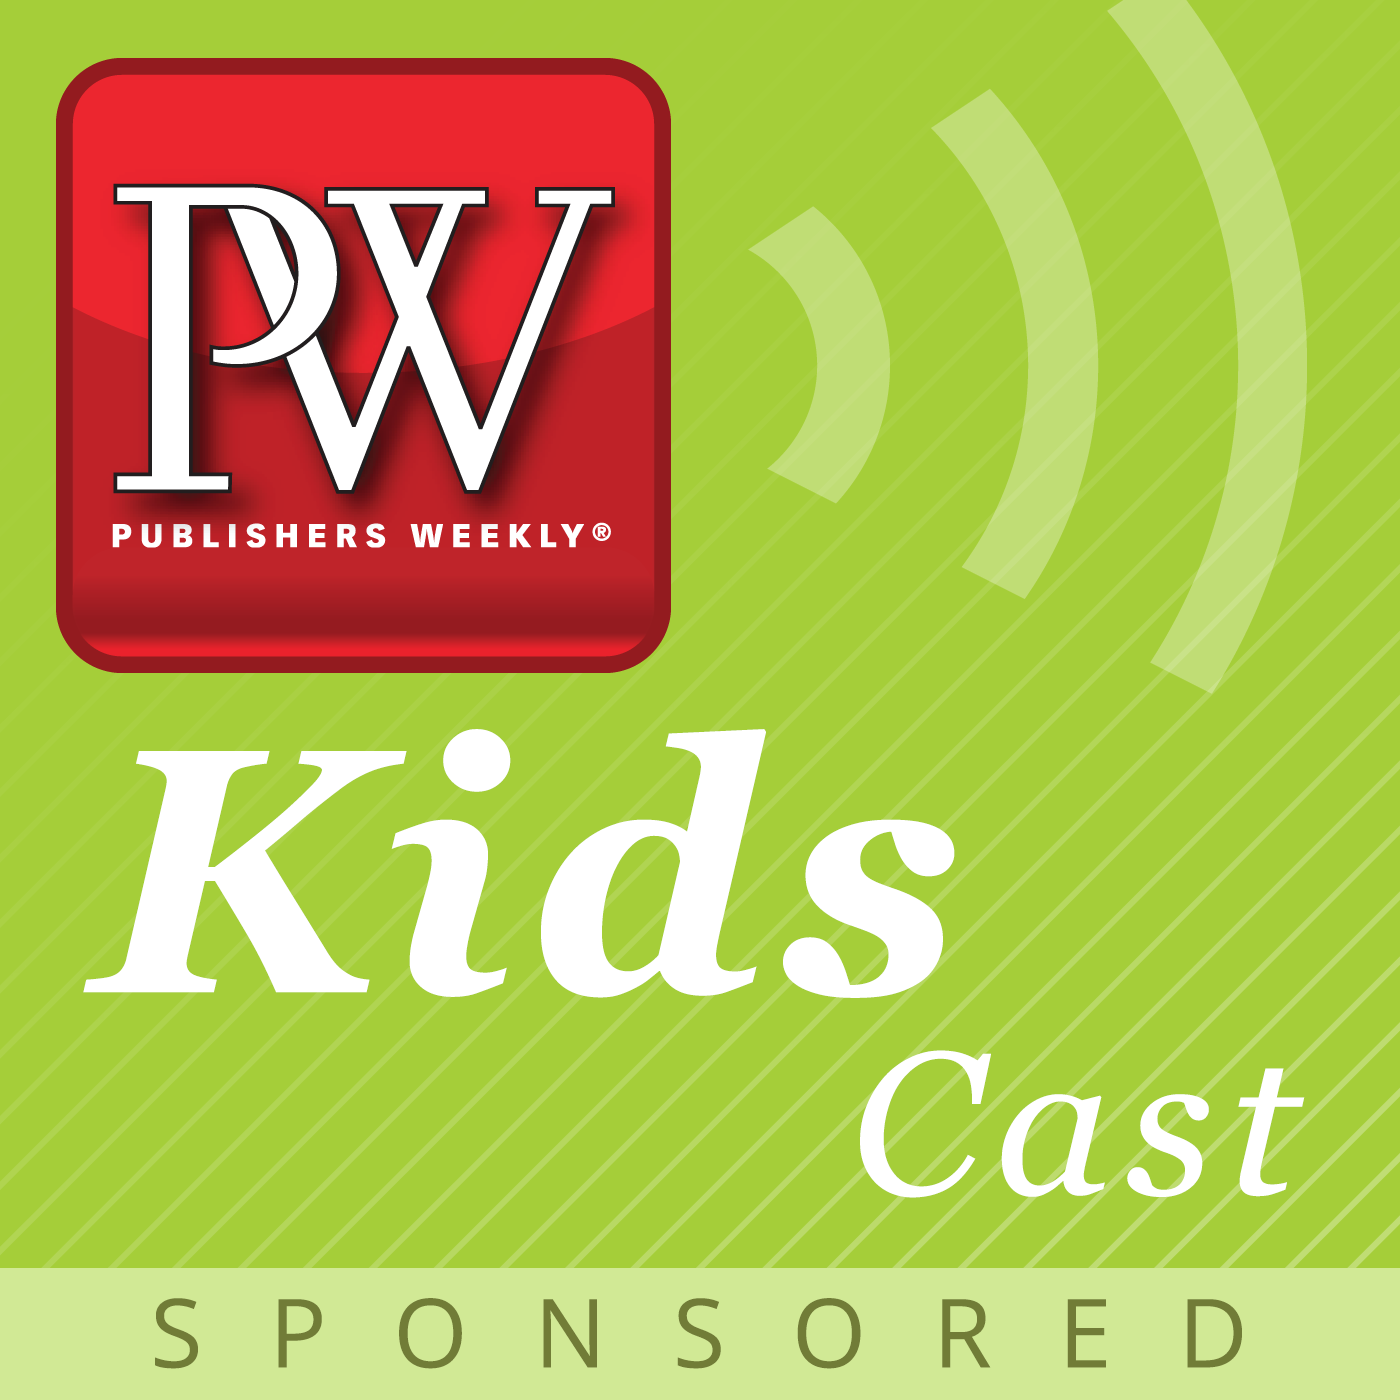 PW KidsCast: A Conversation with Carlos Hernandez